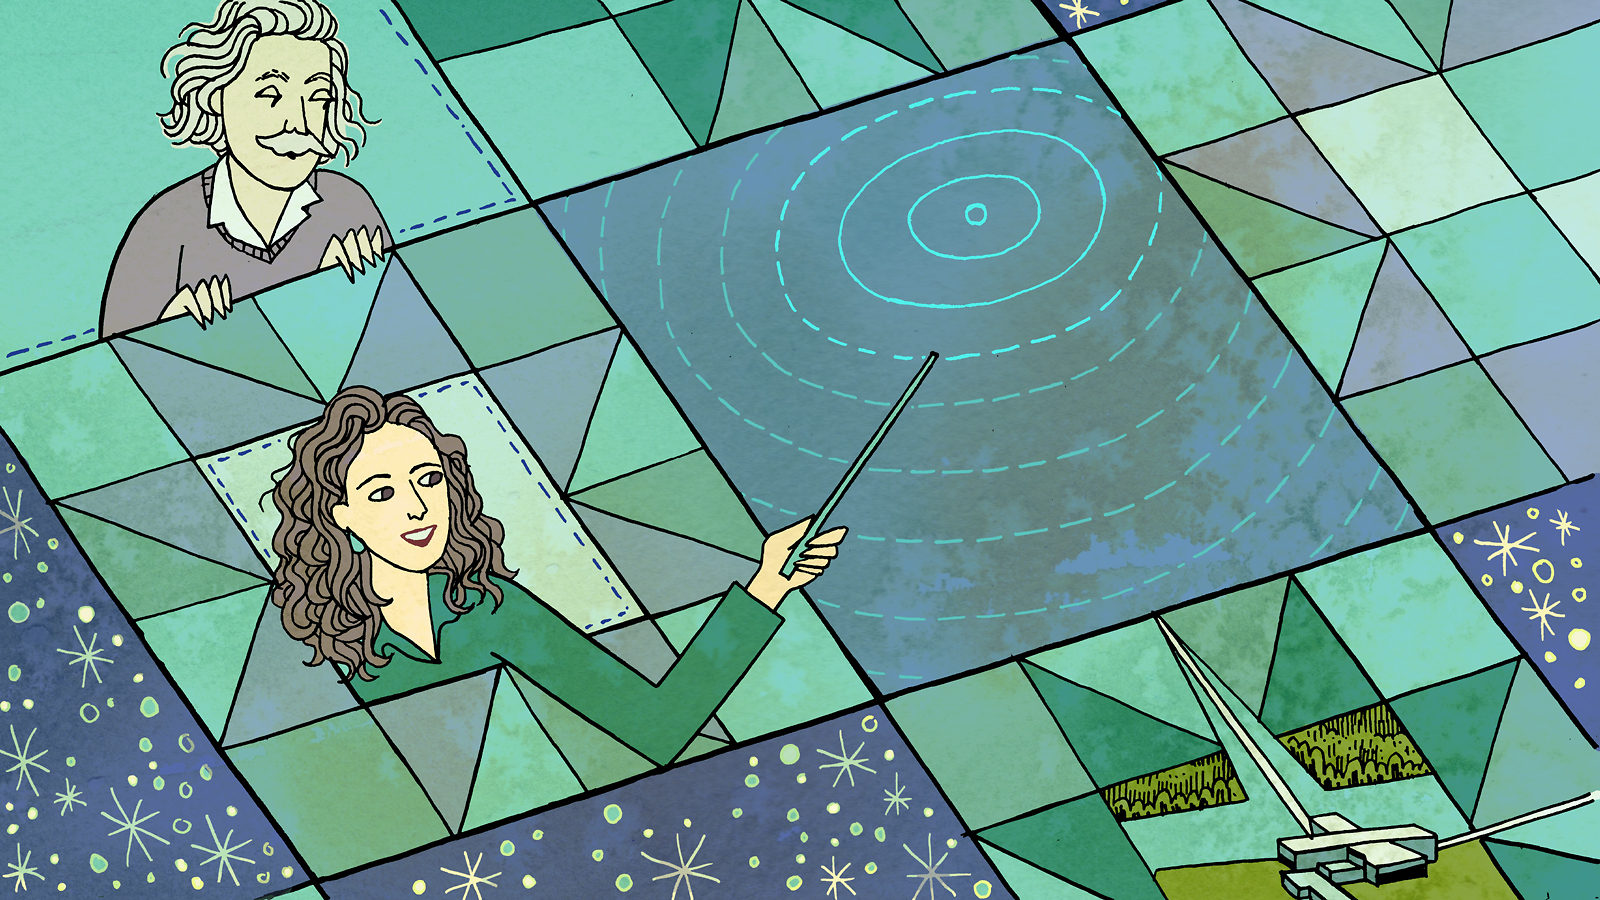 Einstein and woman in game board, she is holding a want and pointing it at concentric circles in space